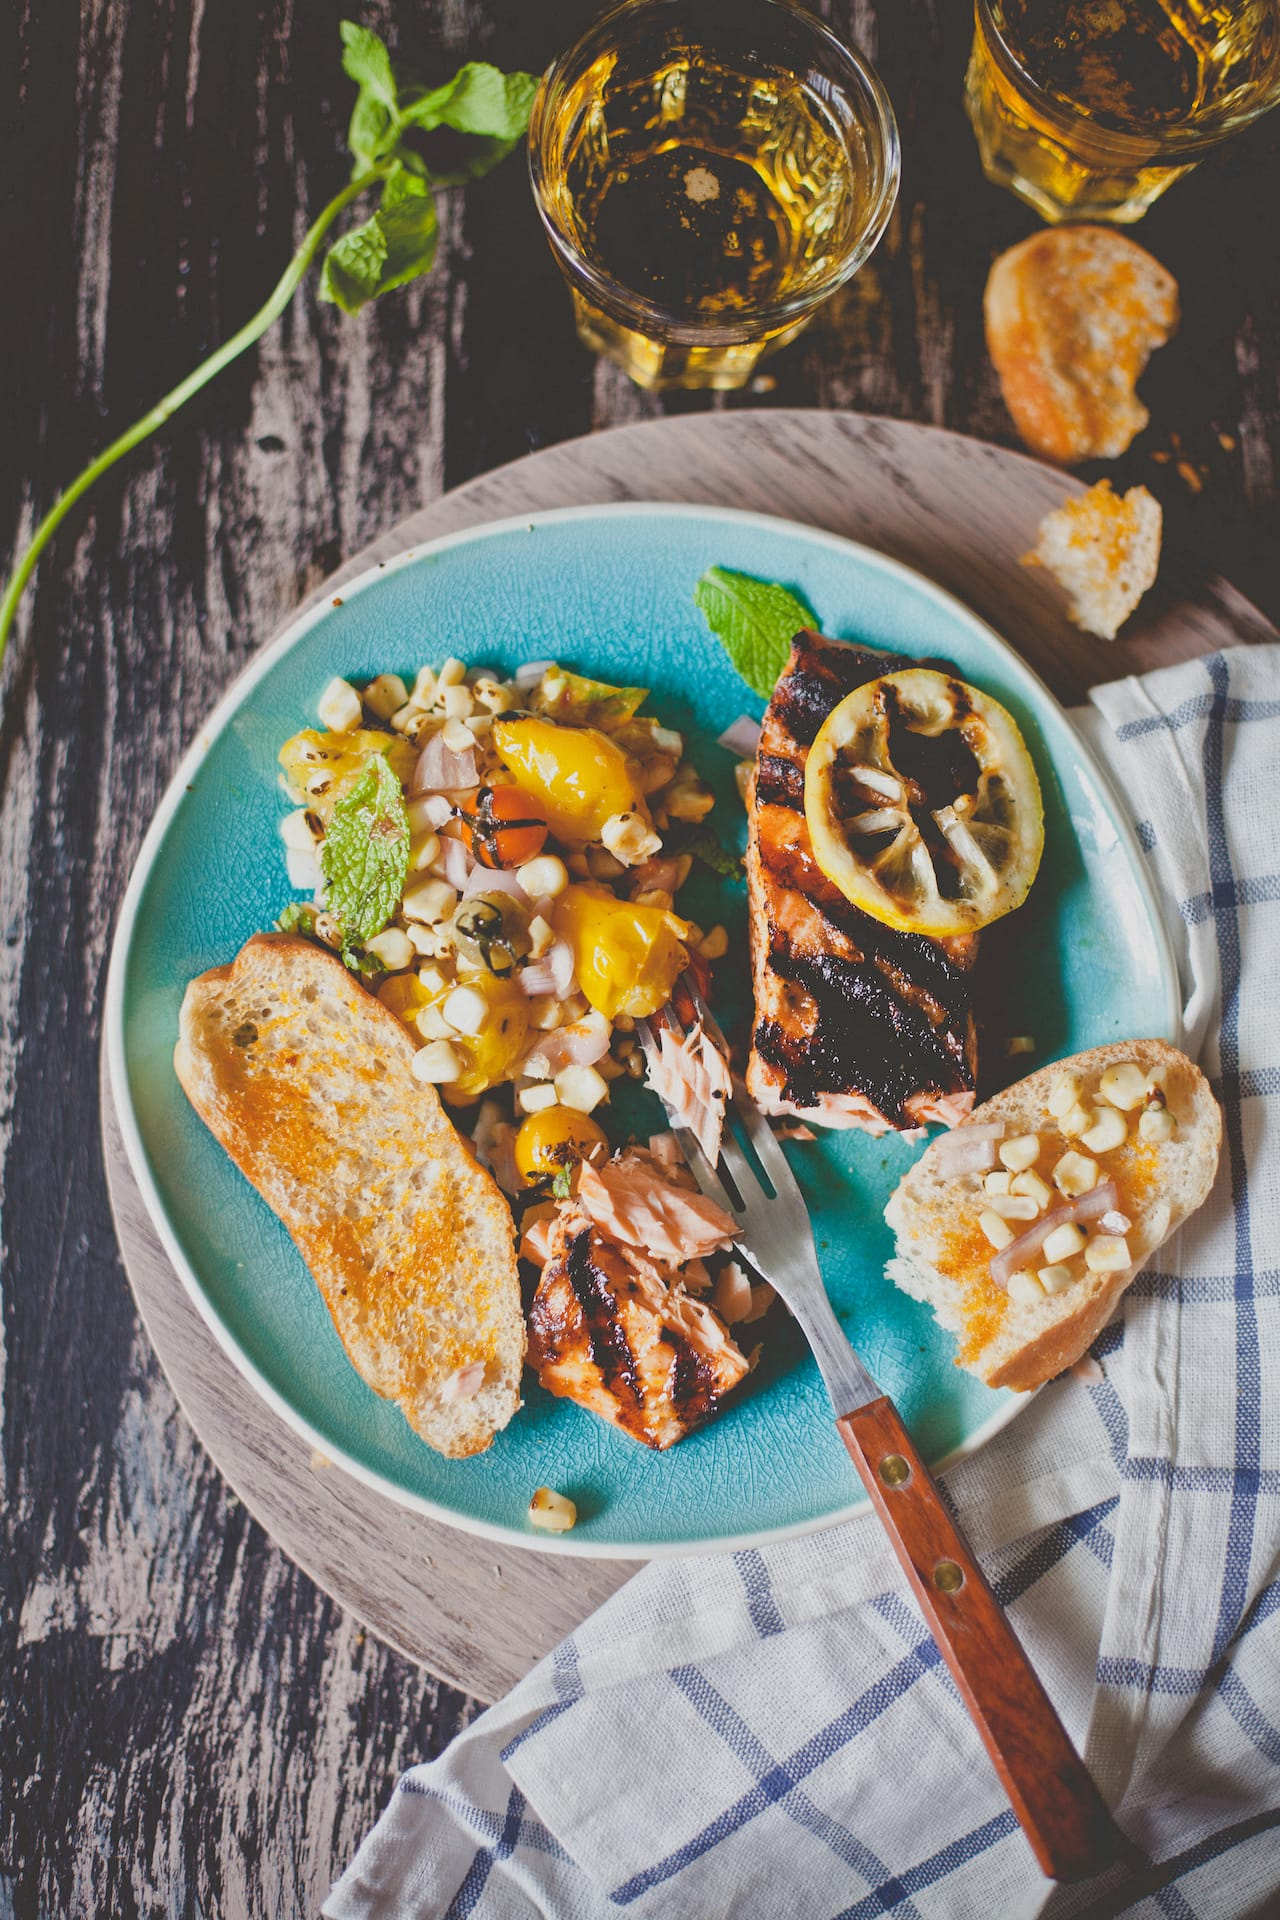 Grilled Salmon With Corn And Heirloom Tomato Salad | Playful Cooking